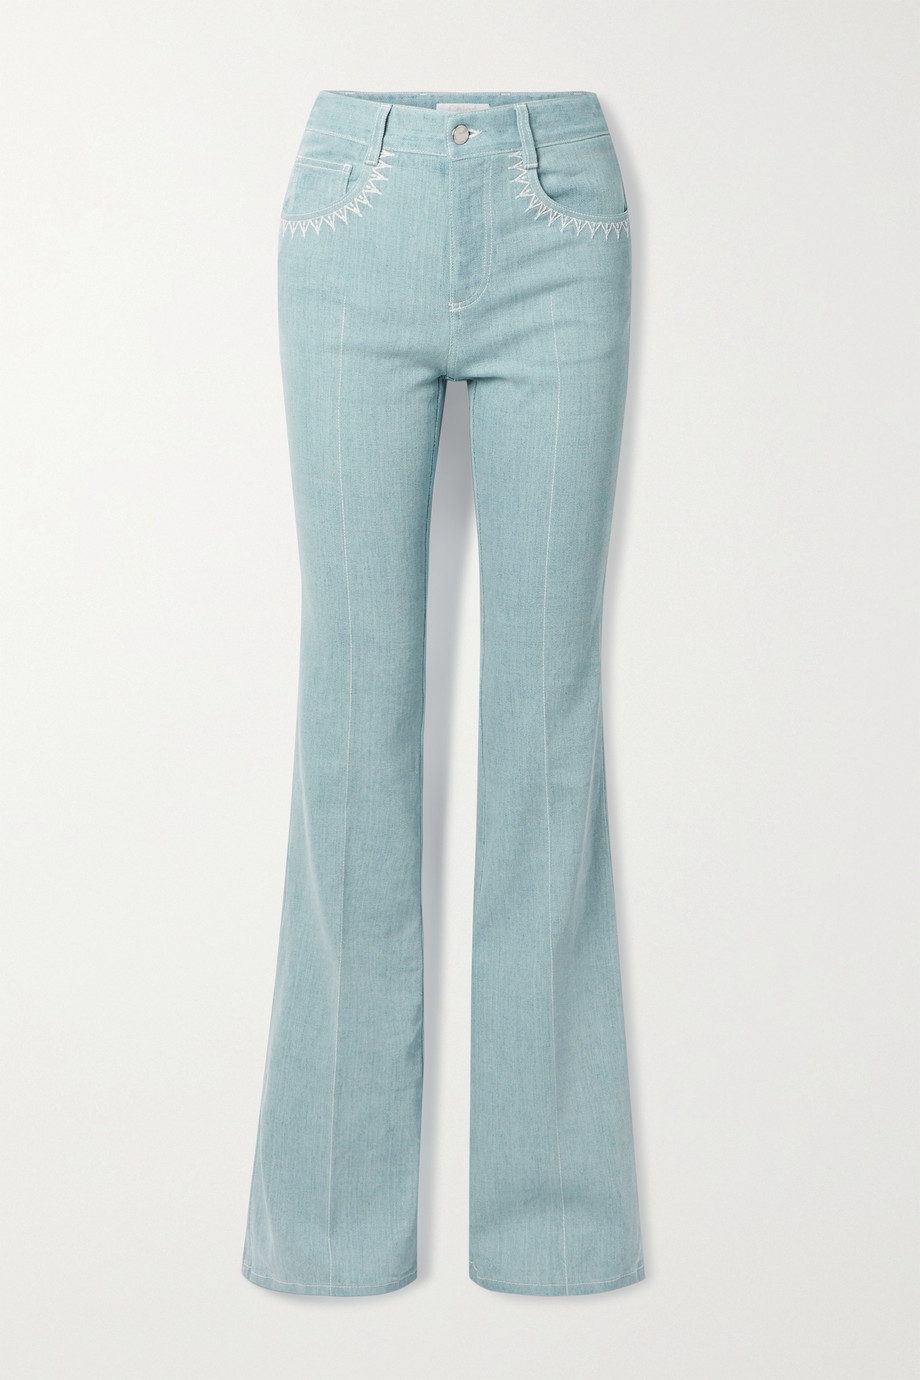 Chloé Embroidered high-rise flared jeans